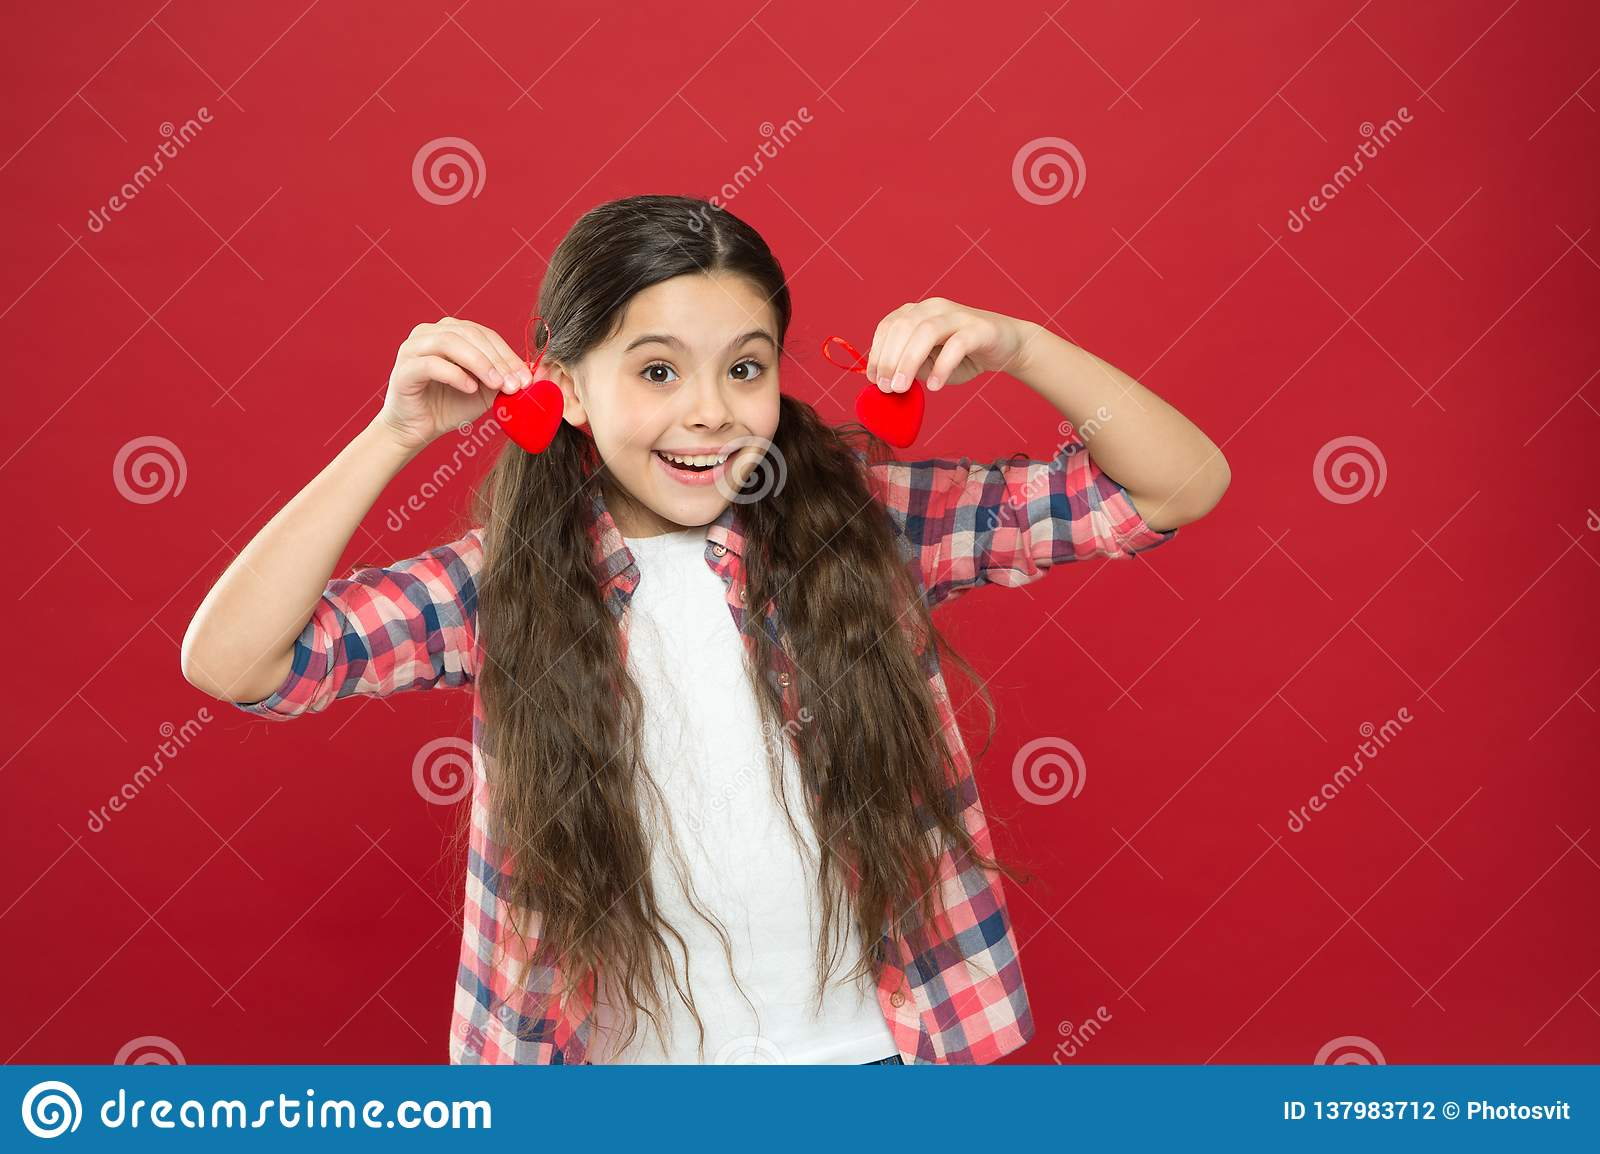 Sincere love. Be my valentine. Family love. Girl cute child with hearts. Kid girl with long hair red background